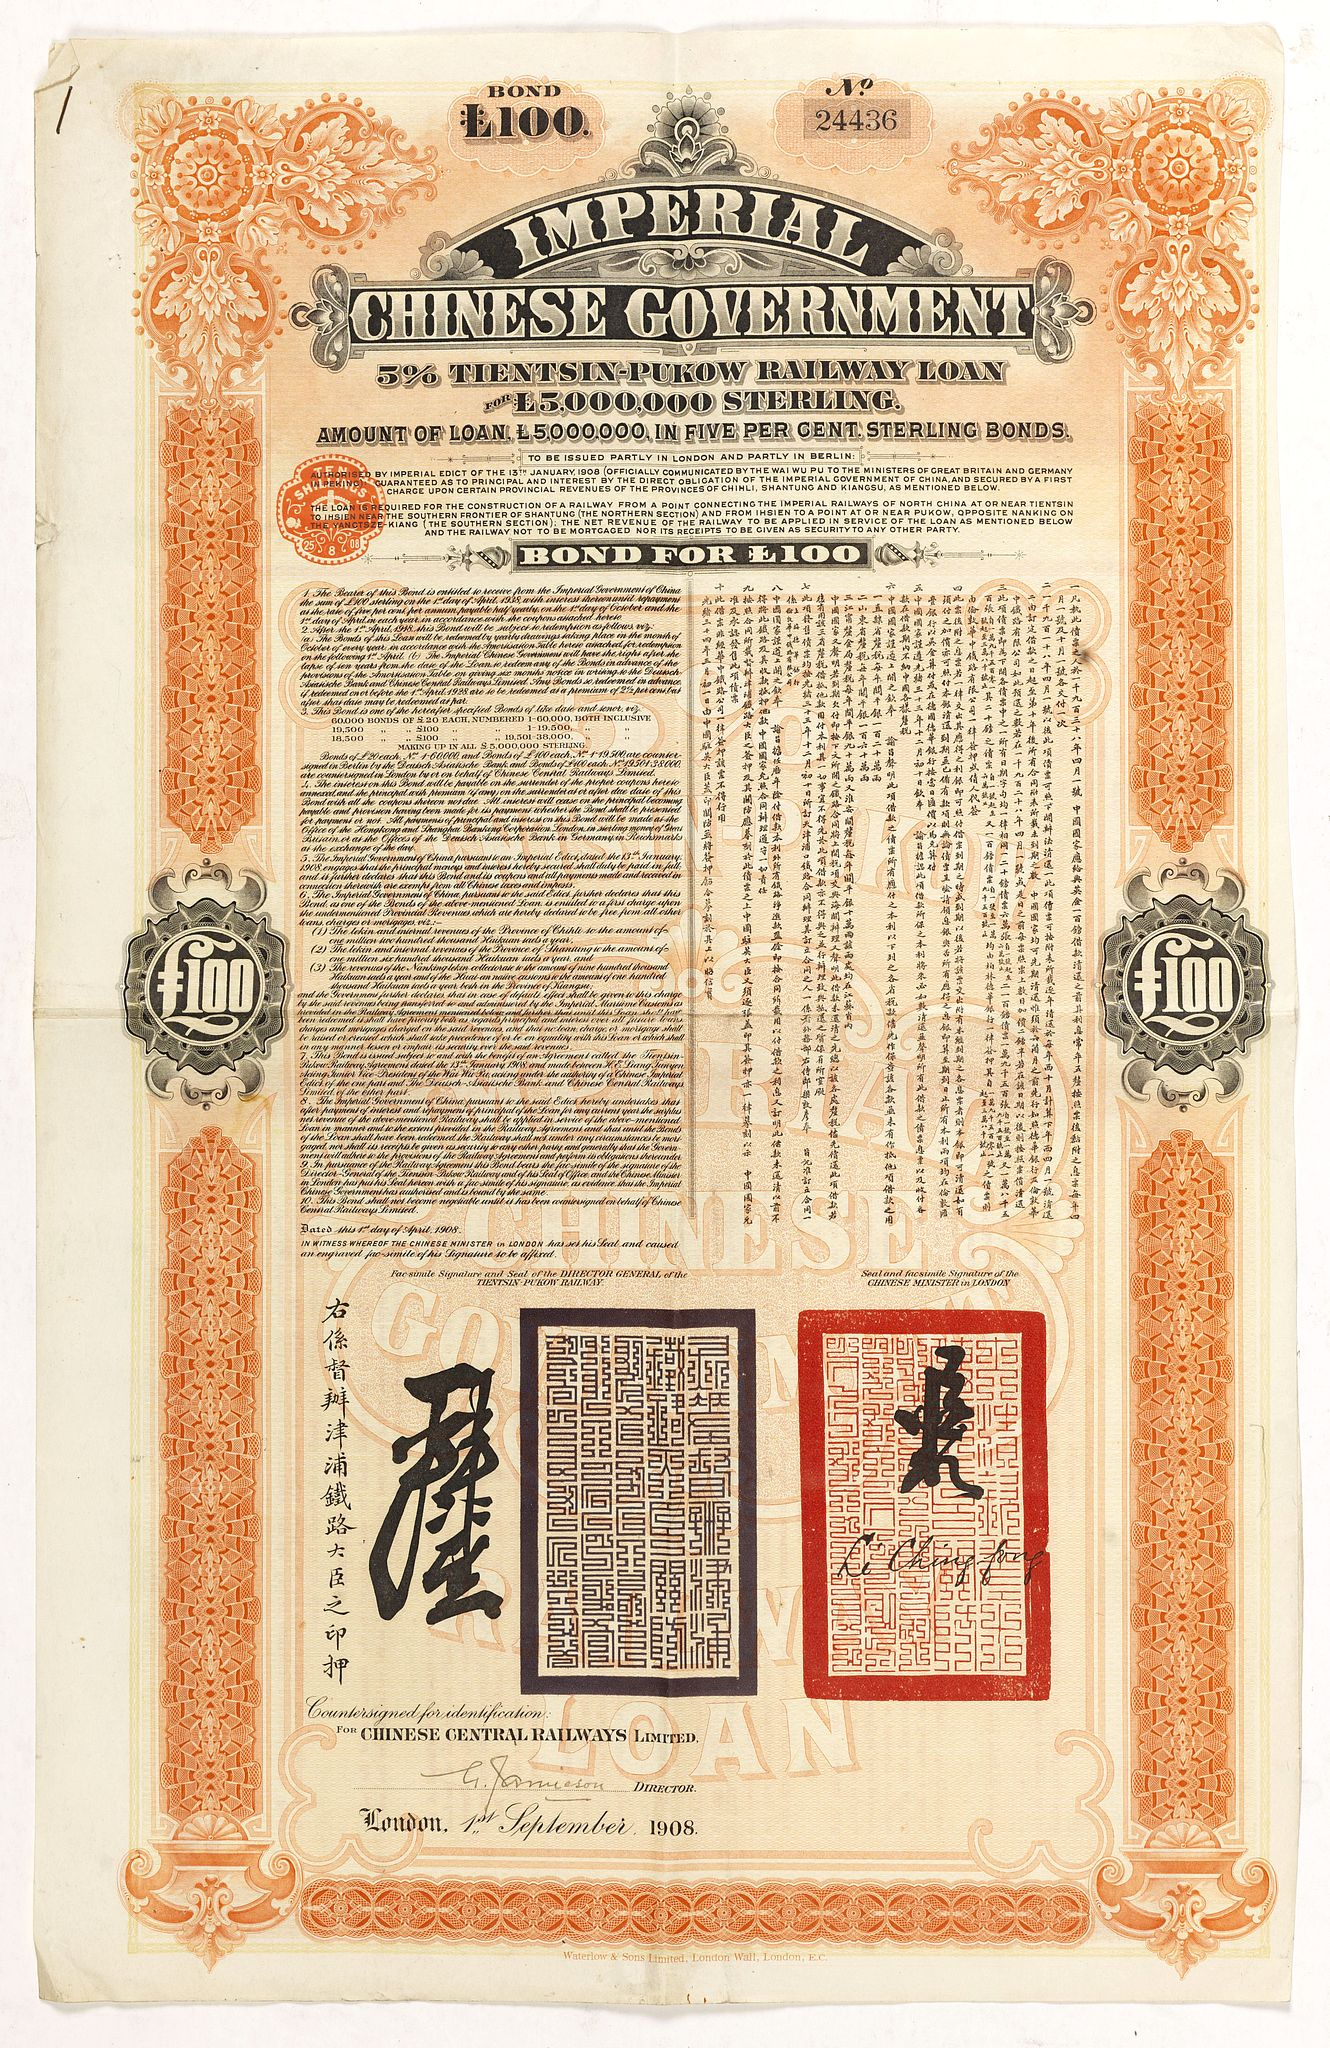 IMPERIAL CHINESE GOVERNMENT - £100 Imperial Chinese Government 5% Tientsin-Pukow Railway Loan . . .